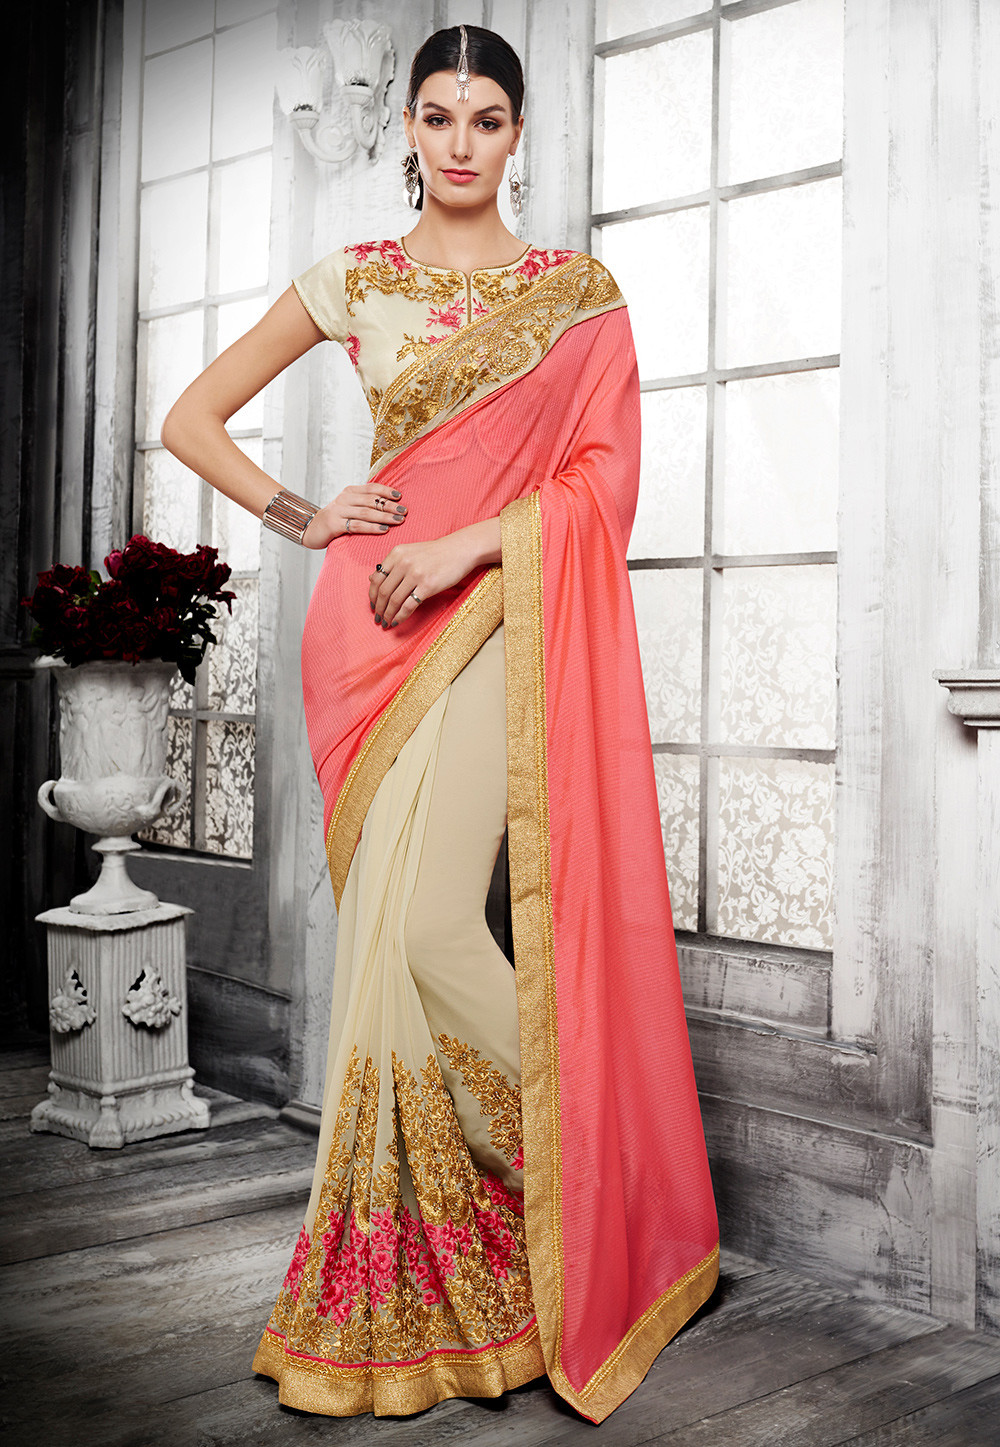 129984f034 Half Half sarees - Designs, Varieties, History and more | Utsavpedia